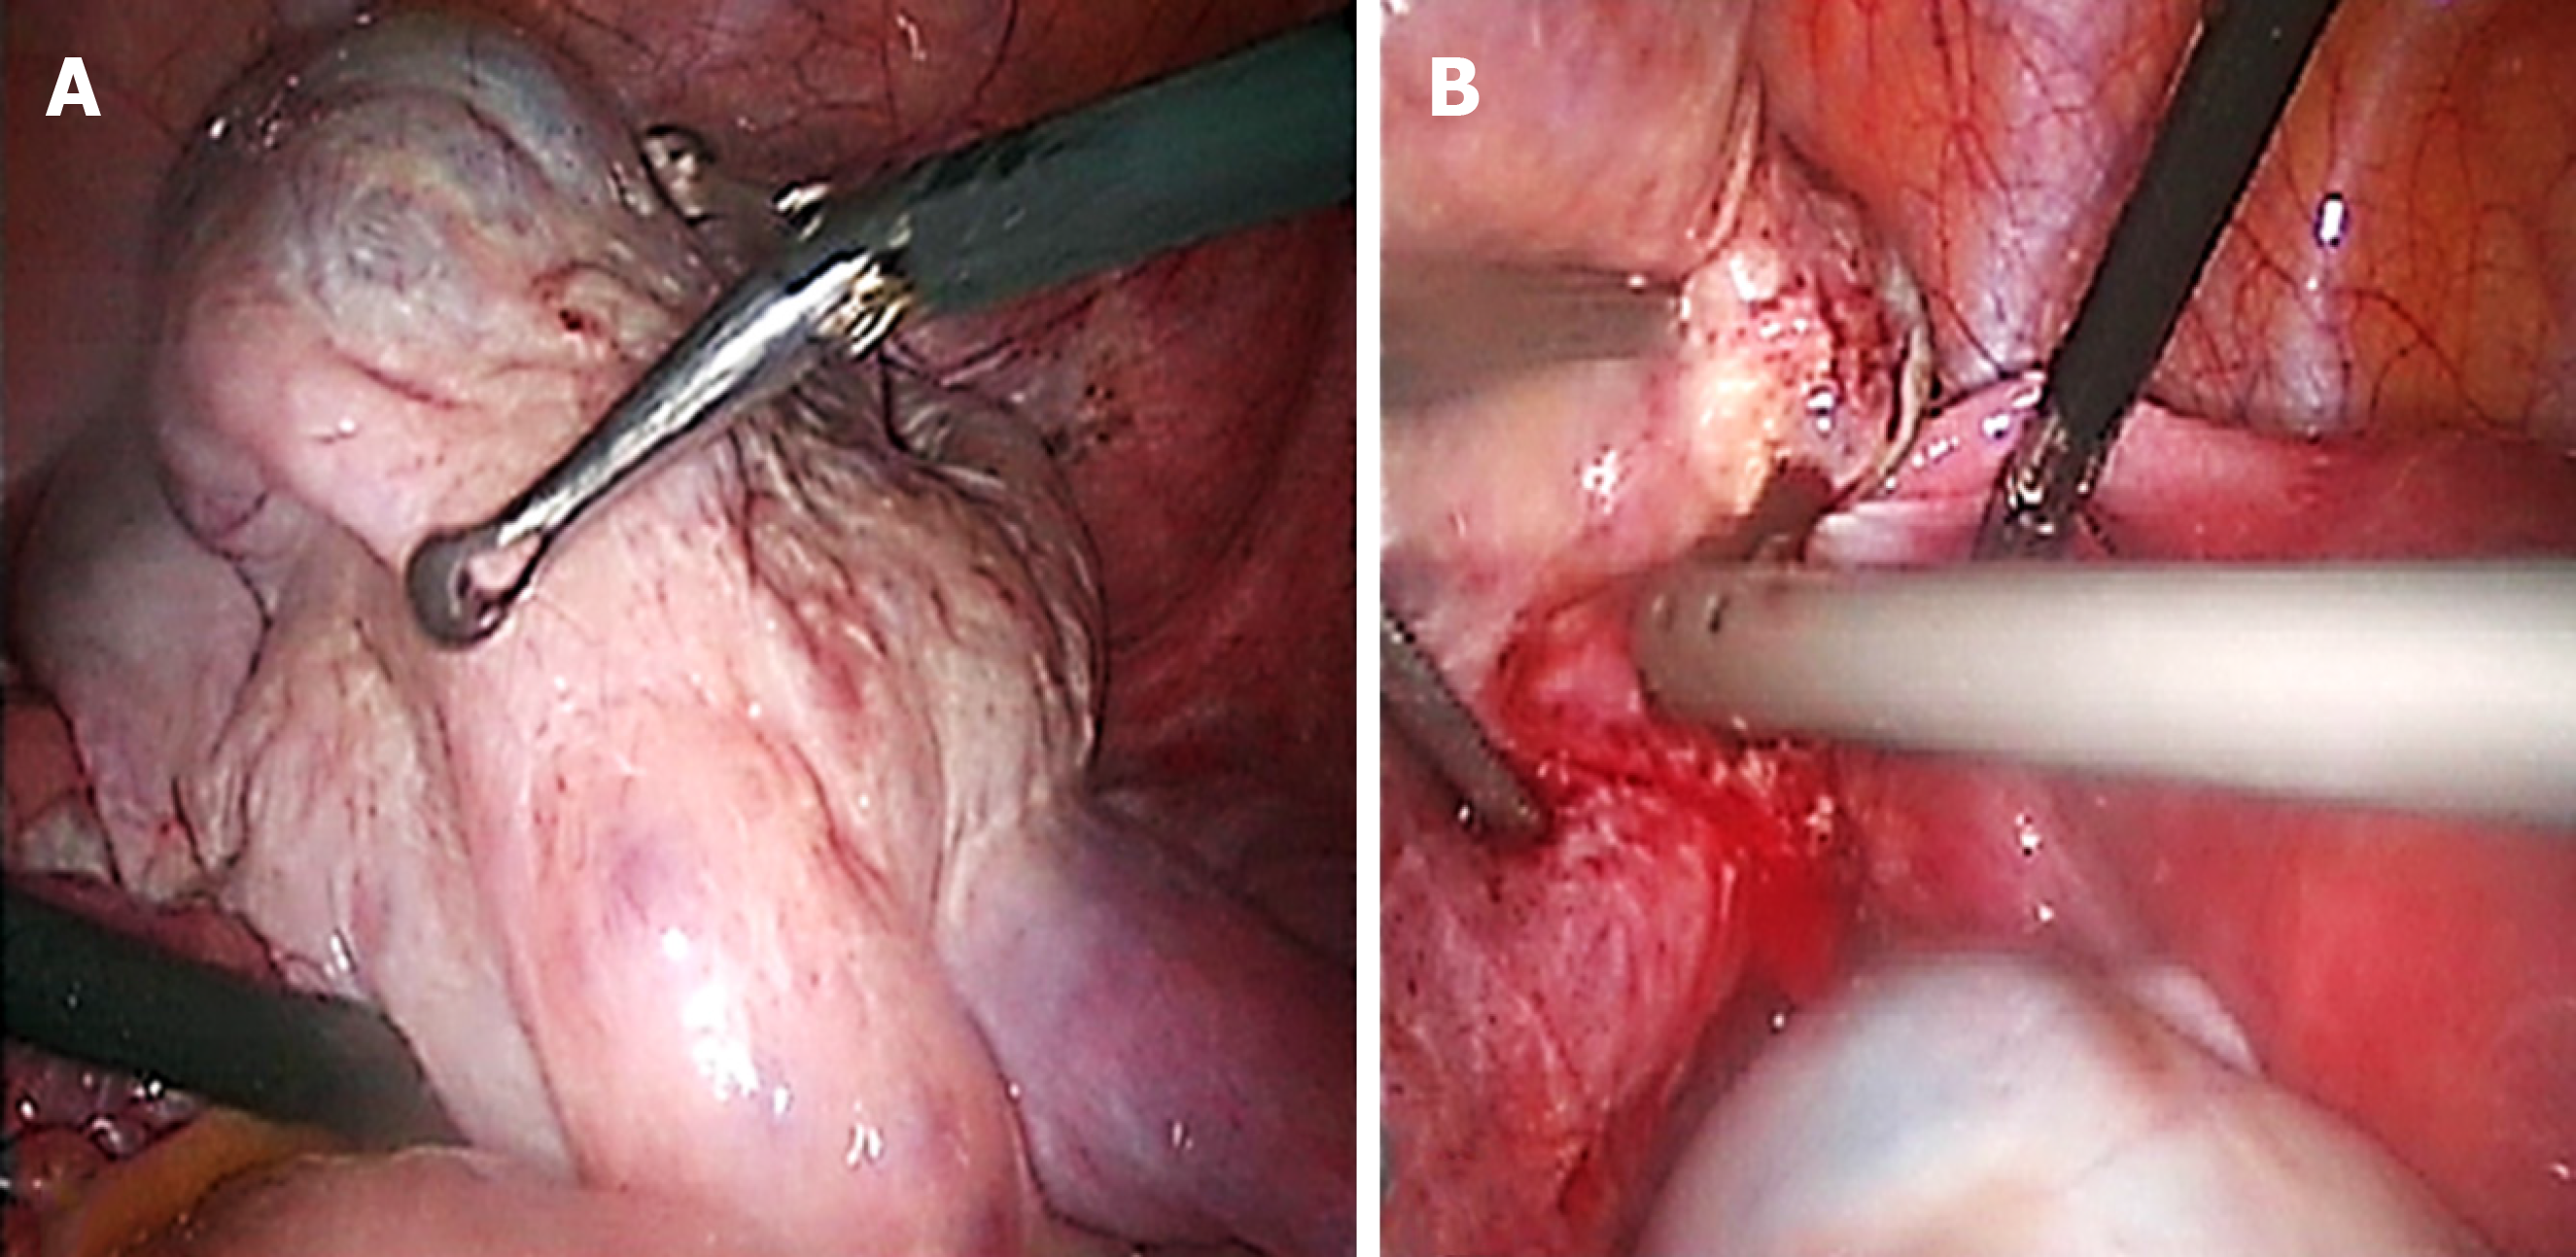 Association Of Endometrioma With Ovarian Teratoma And Mucinous Cystadenoma In A Patient Diagnosed With Endometriosis A Case Report